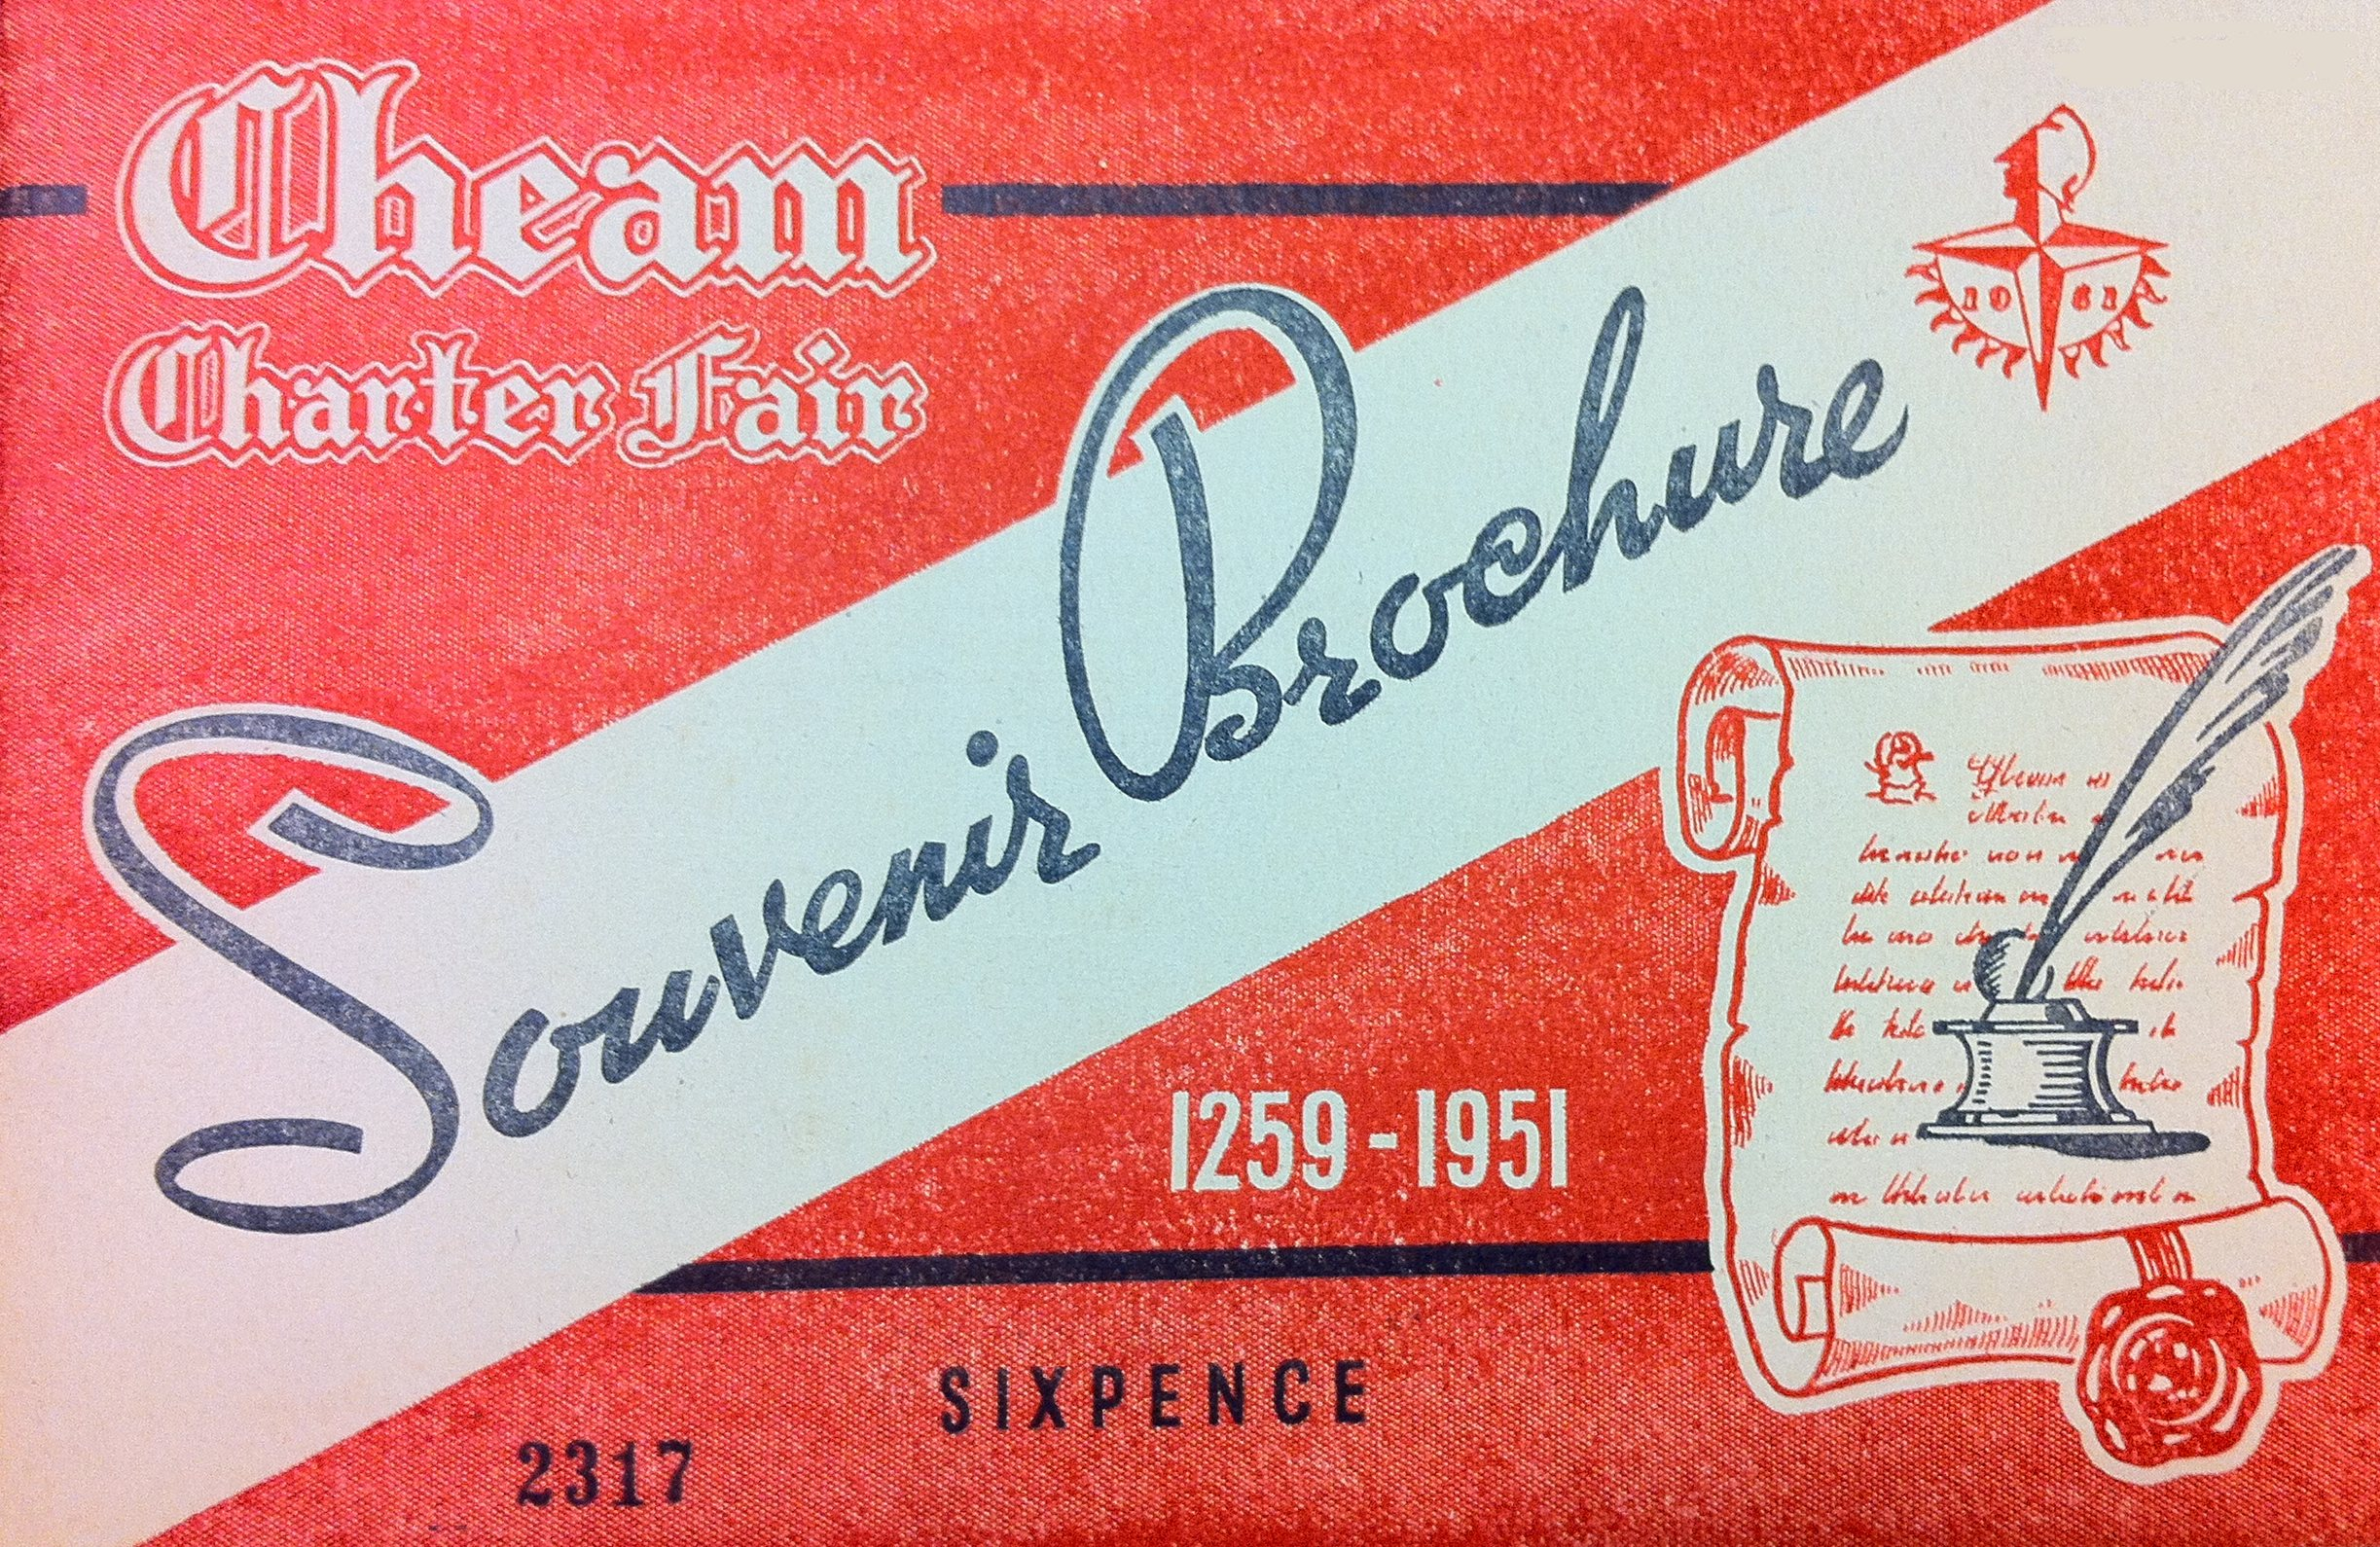 Cheam Charter Fair Souvenir Brochure 1951 cover